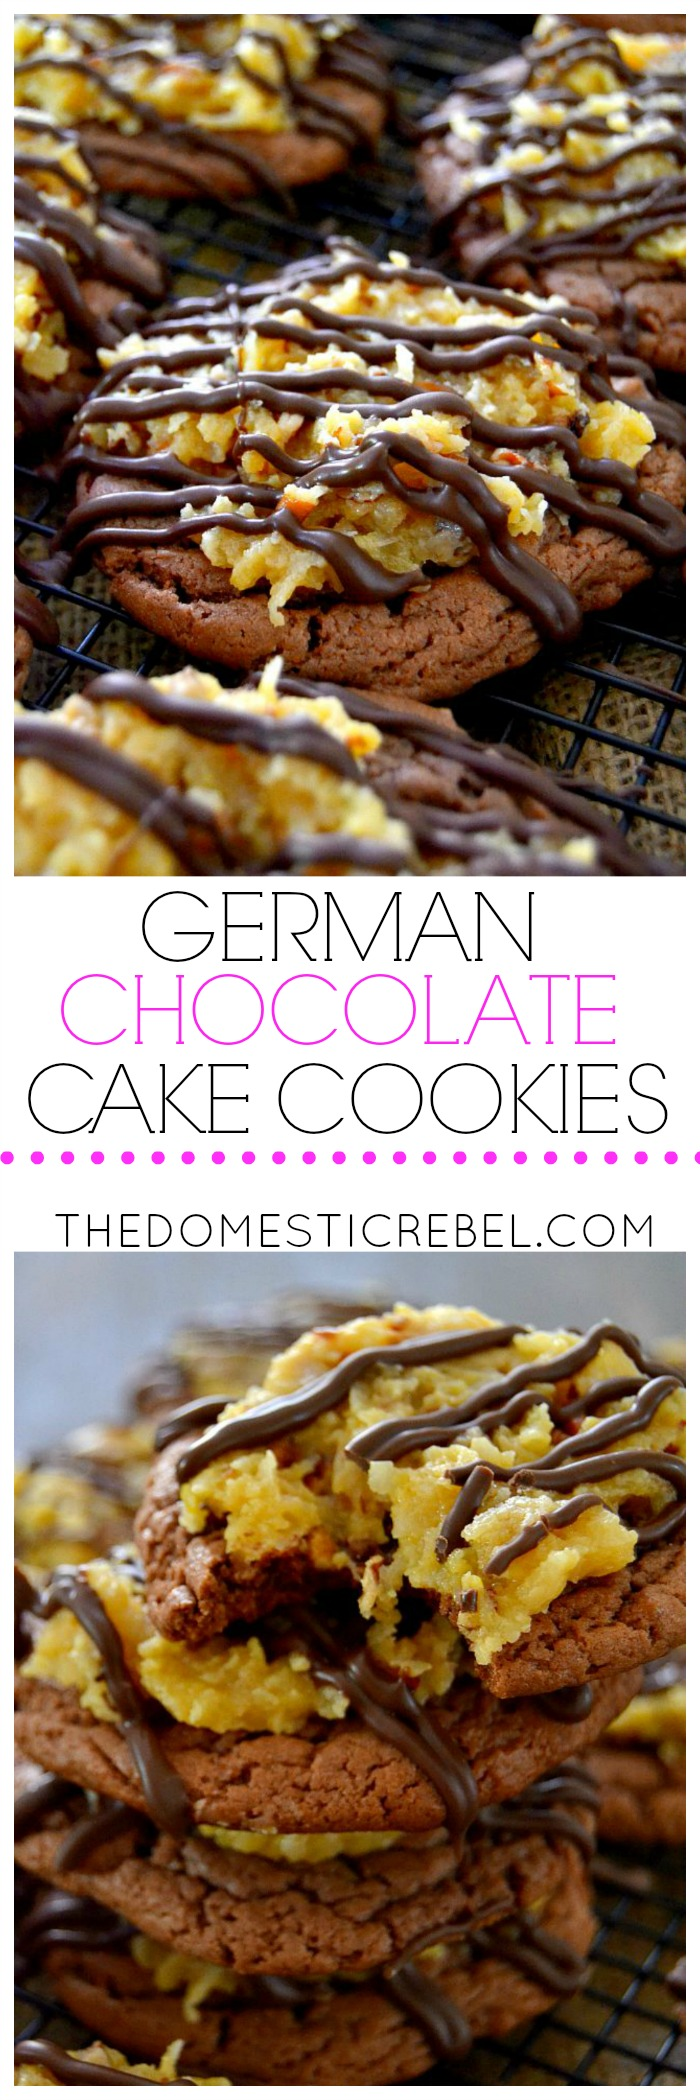 German Chocolate Cake Cookies | The Domestic Rebel